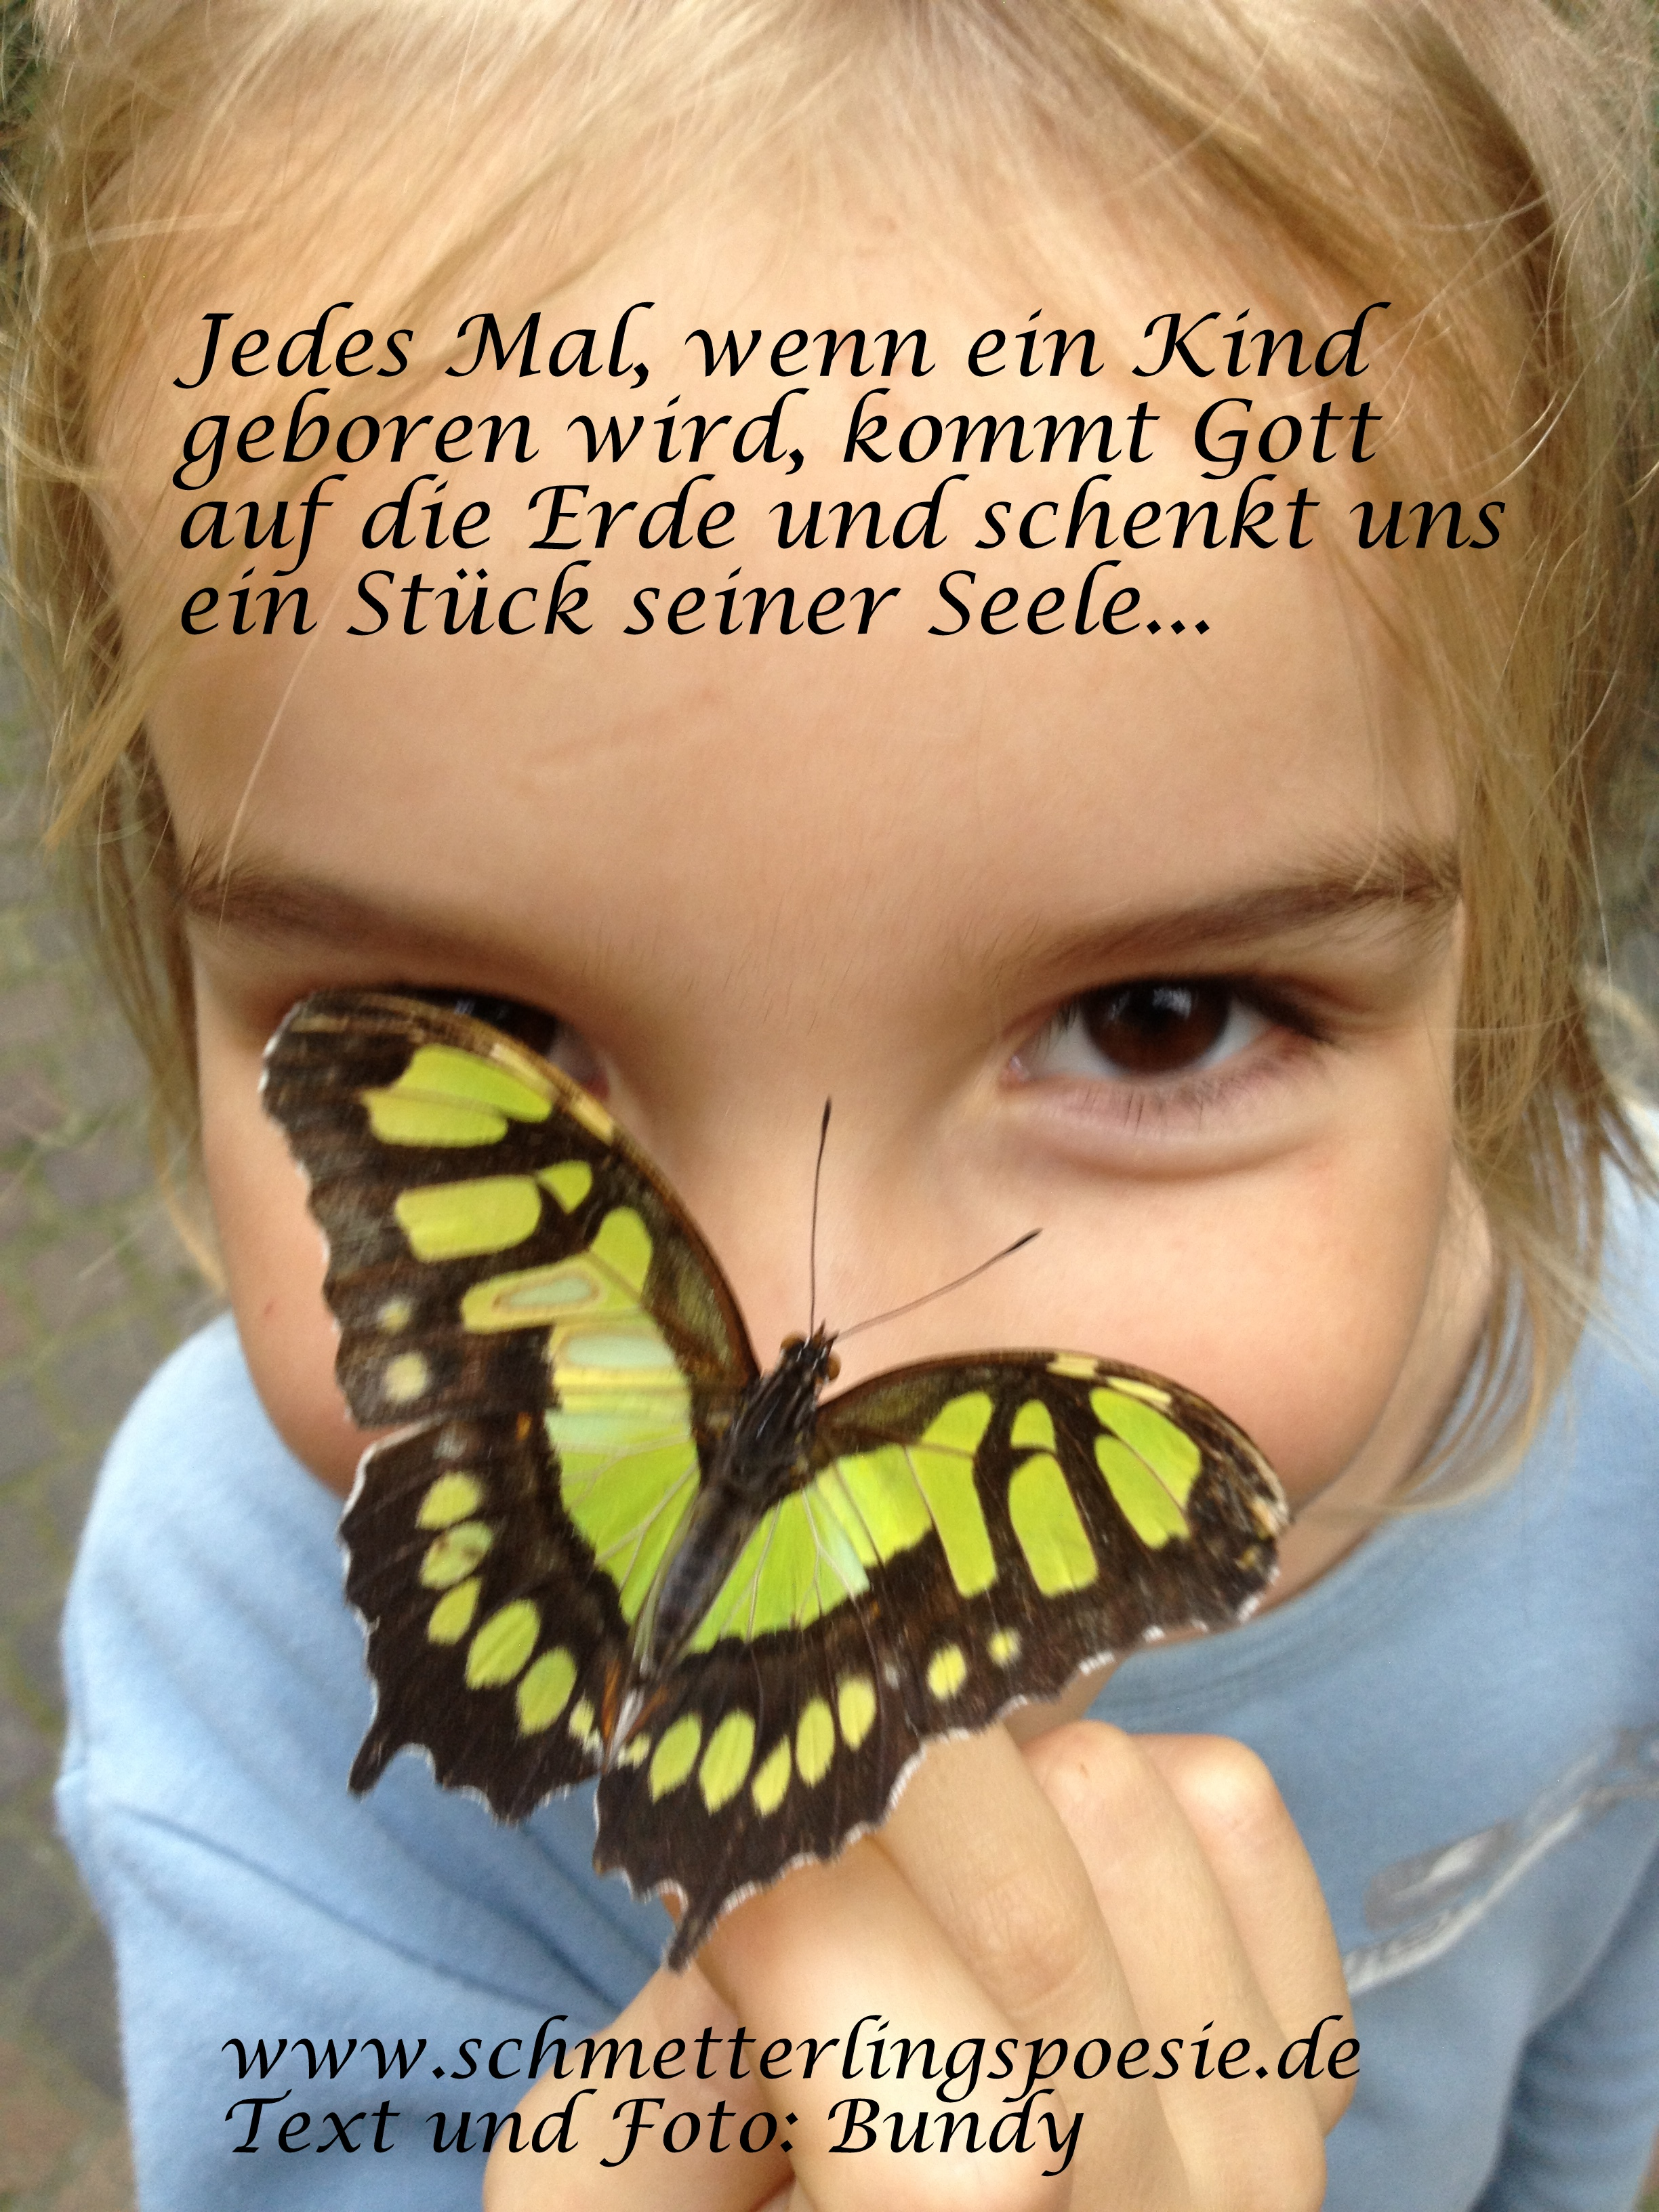 susi-green-06-01-12-text